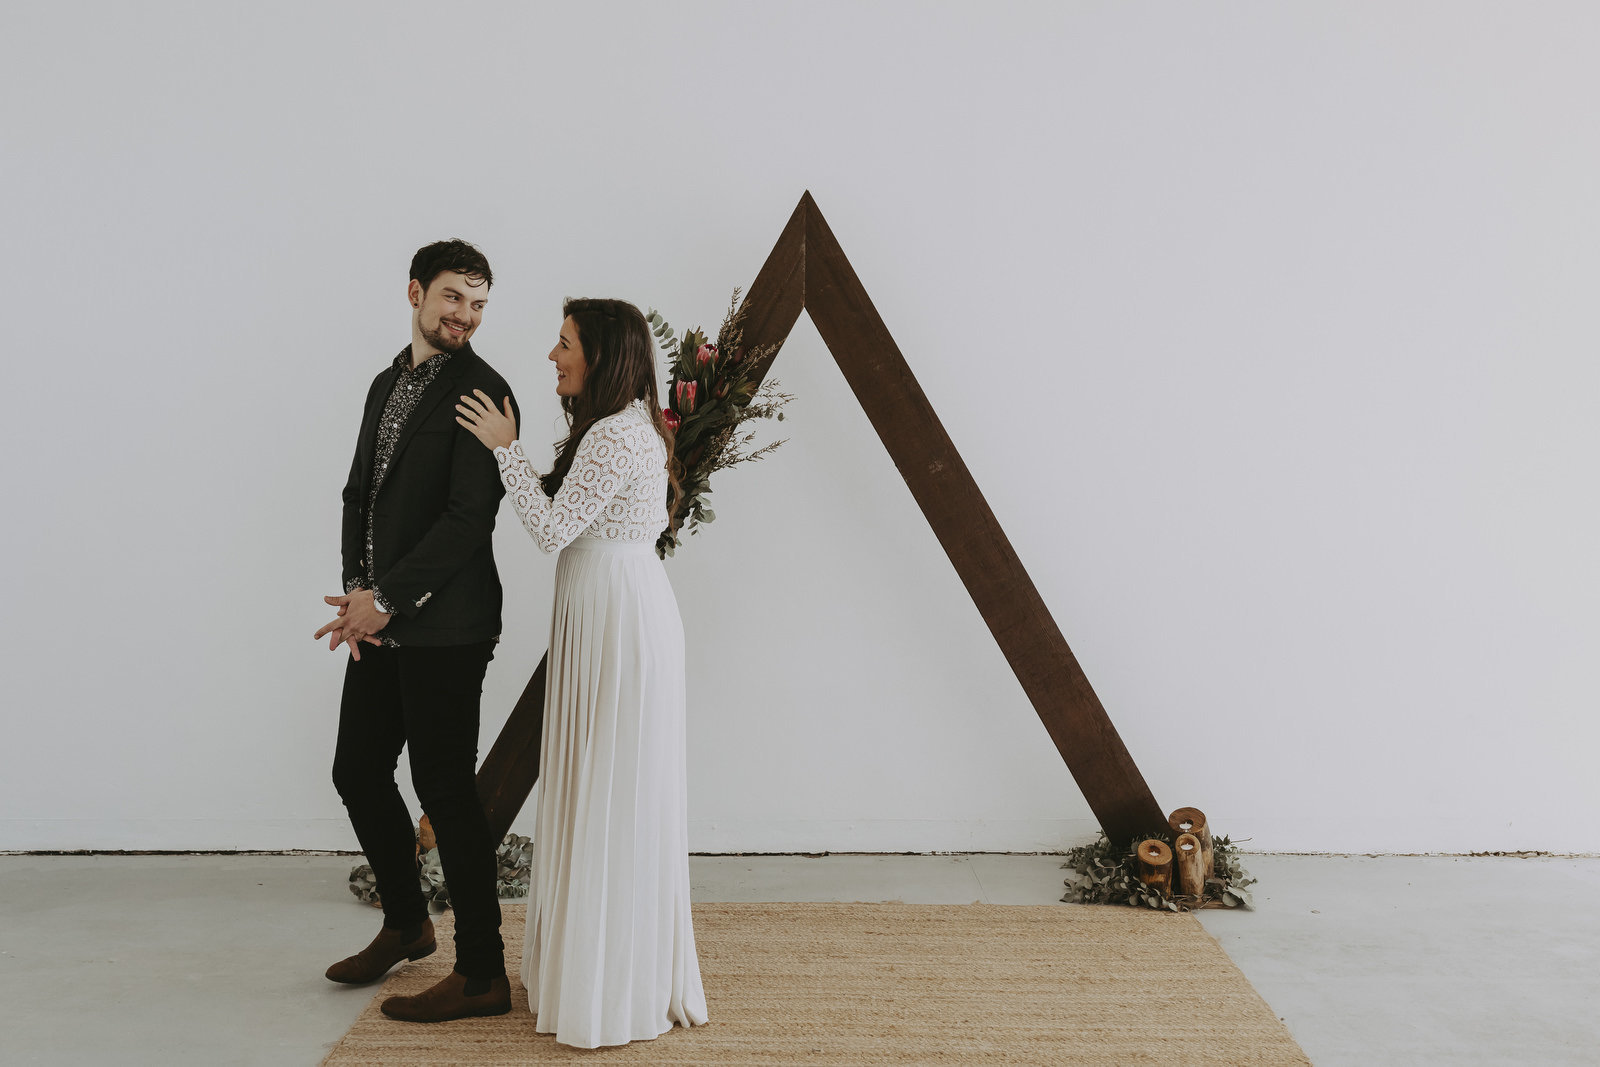 athena-and-camron-sydney-wedding-boho-romance-james-simmons-photography-christian-couple-goals13